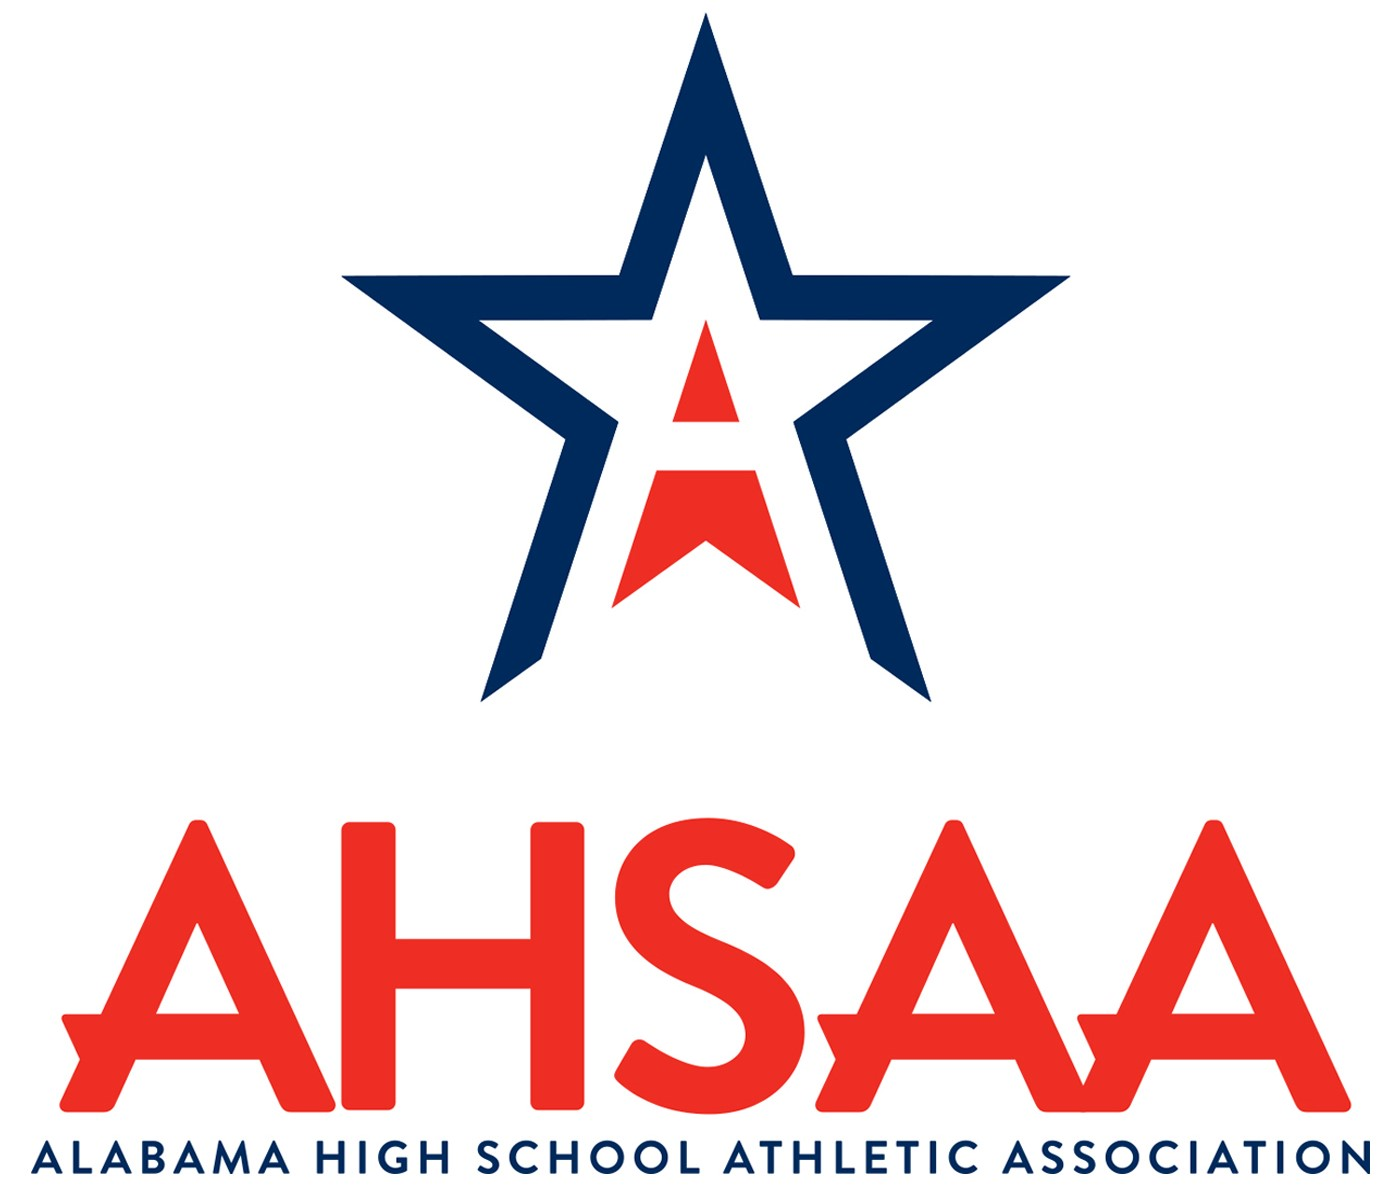 Central Board Approves AHSAA Return to Play 'Best Practices' for Winter Sports and Fall Playoff Formats